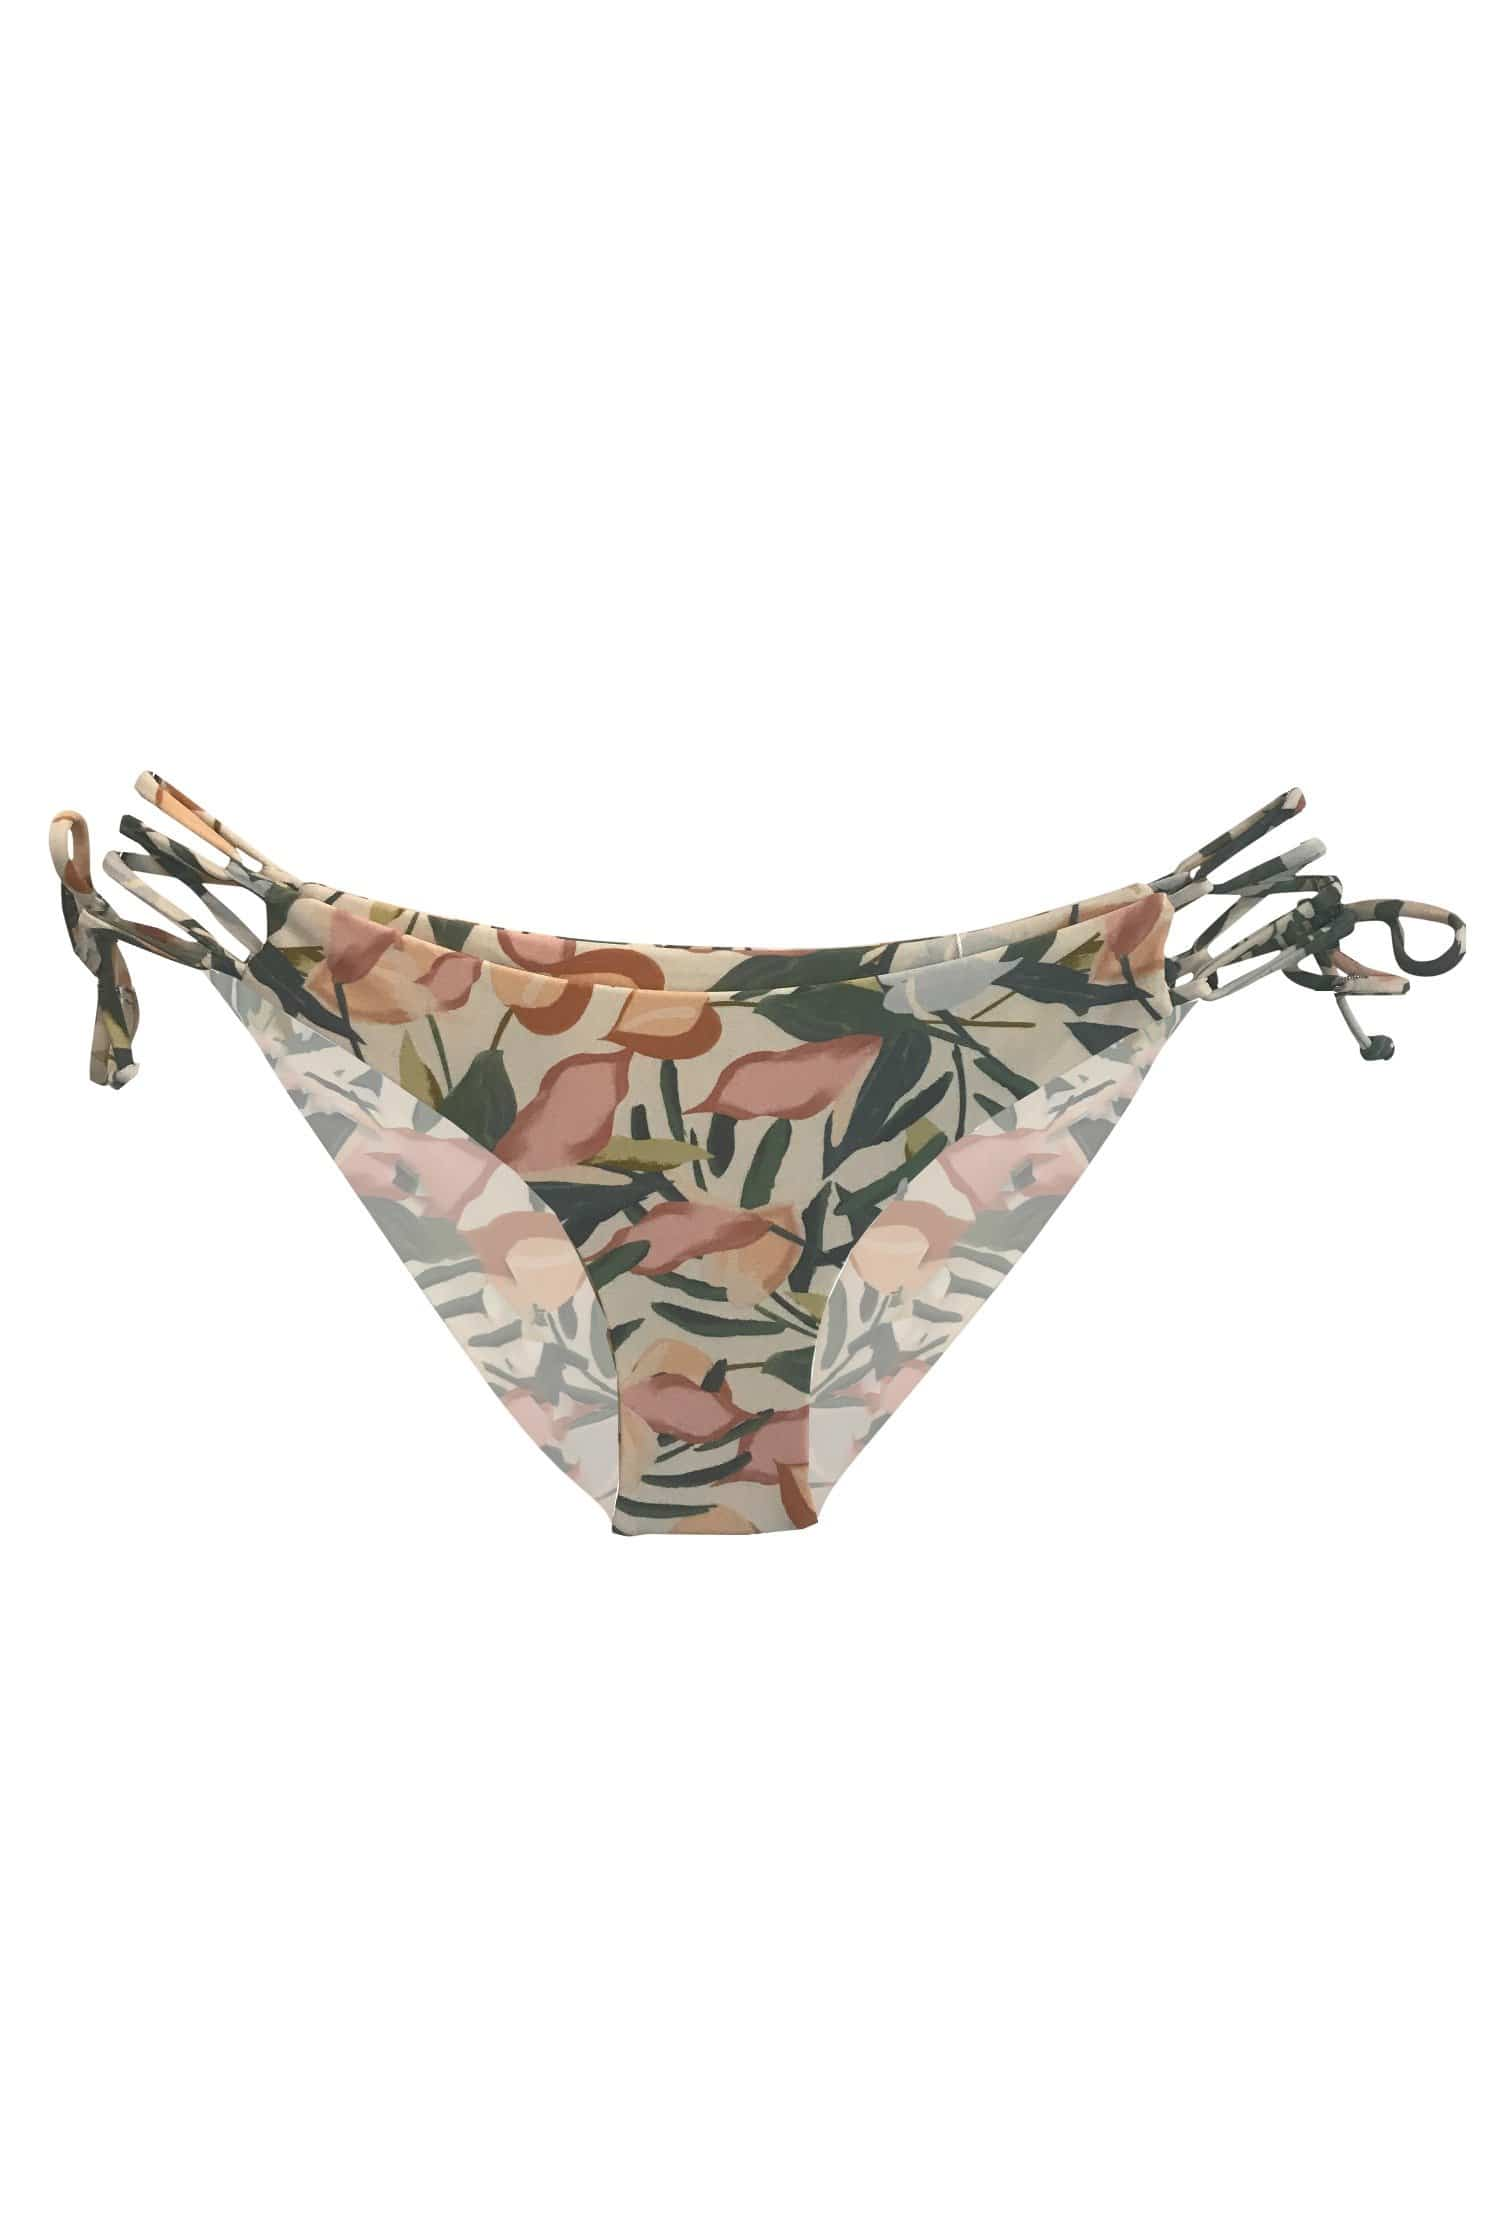 *Sale* Tahiti Bottom Full Vintage Floral